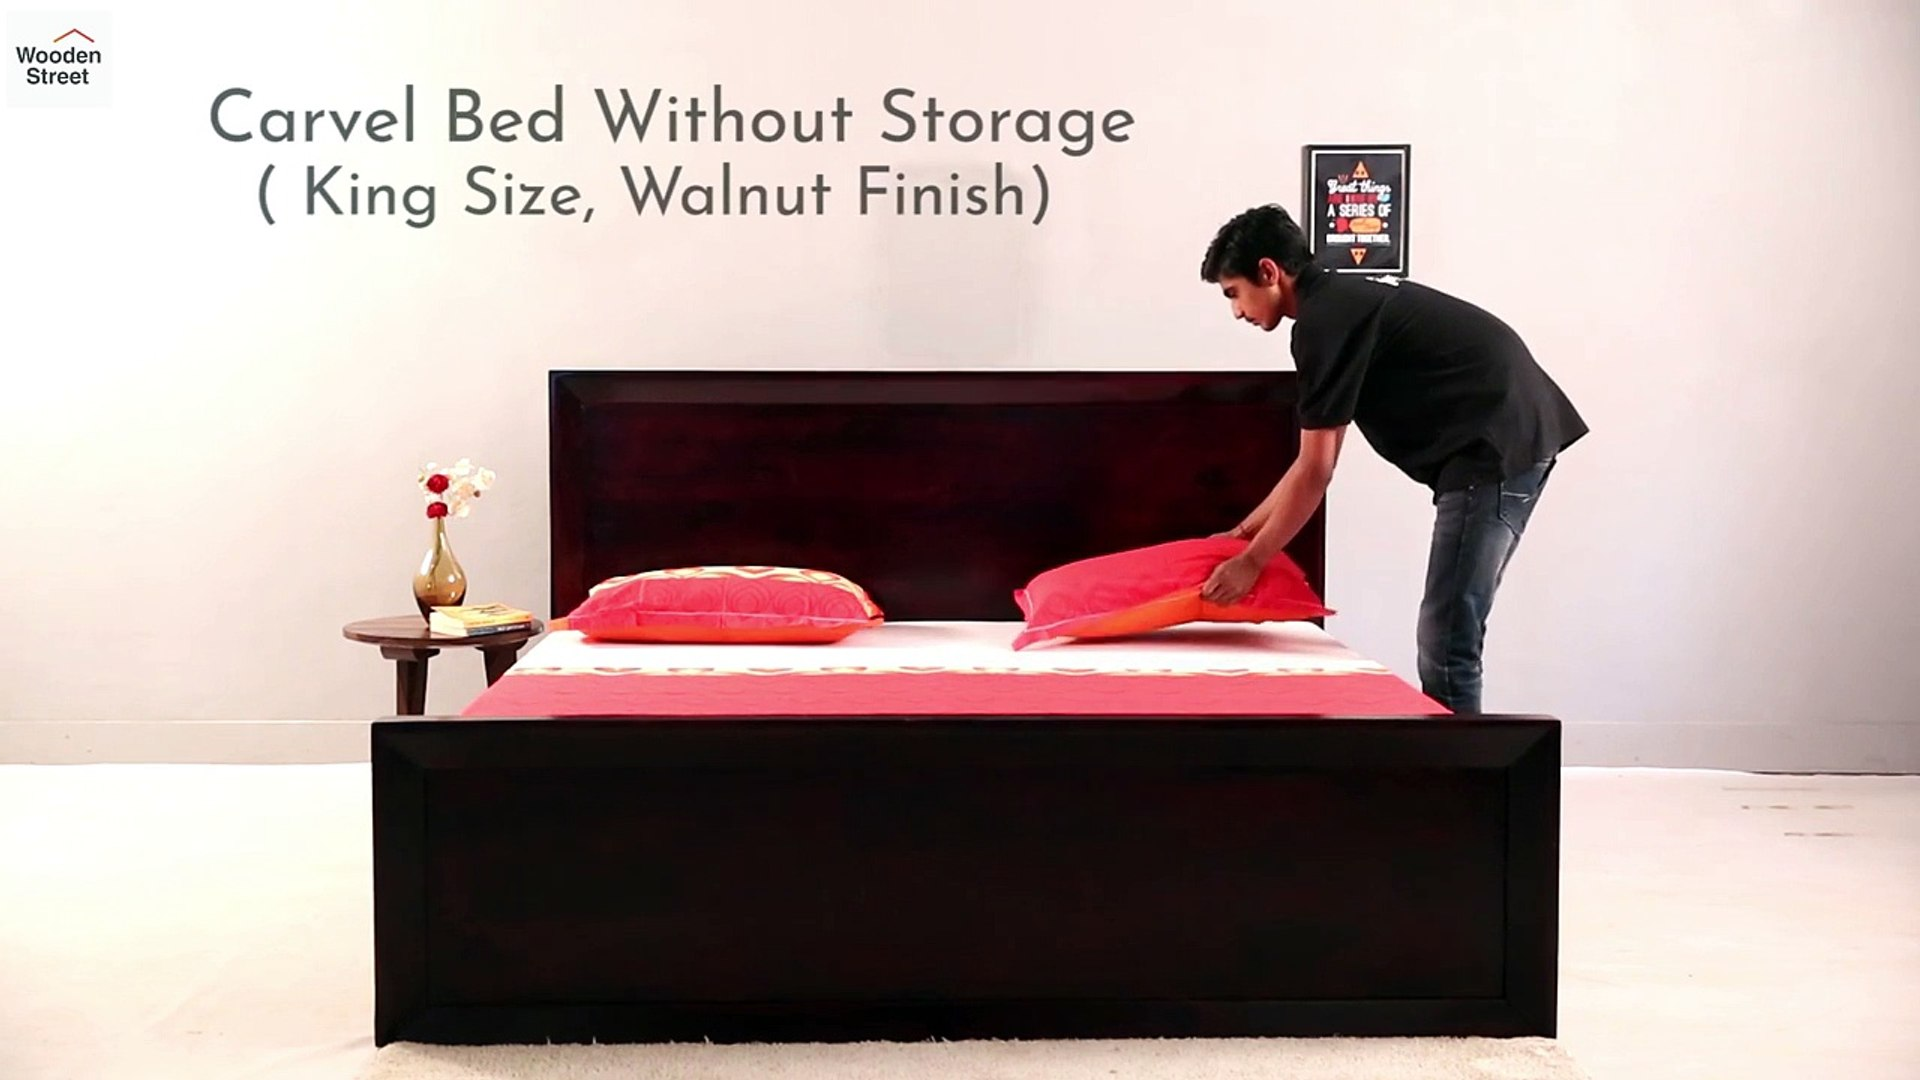 Picture of: King Size Bed Shop Carvel Bed Without Storage In Walnut Finish Online From Wooden Street Video Dailymotion